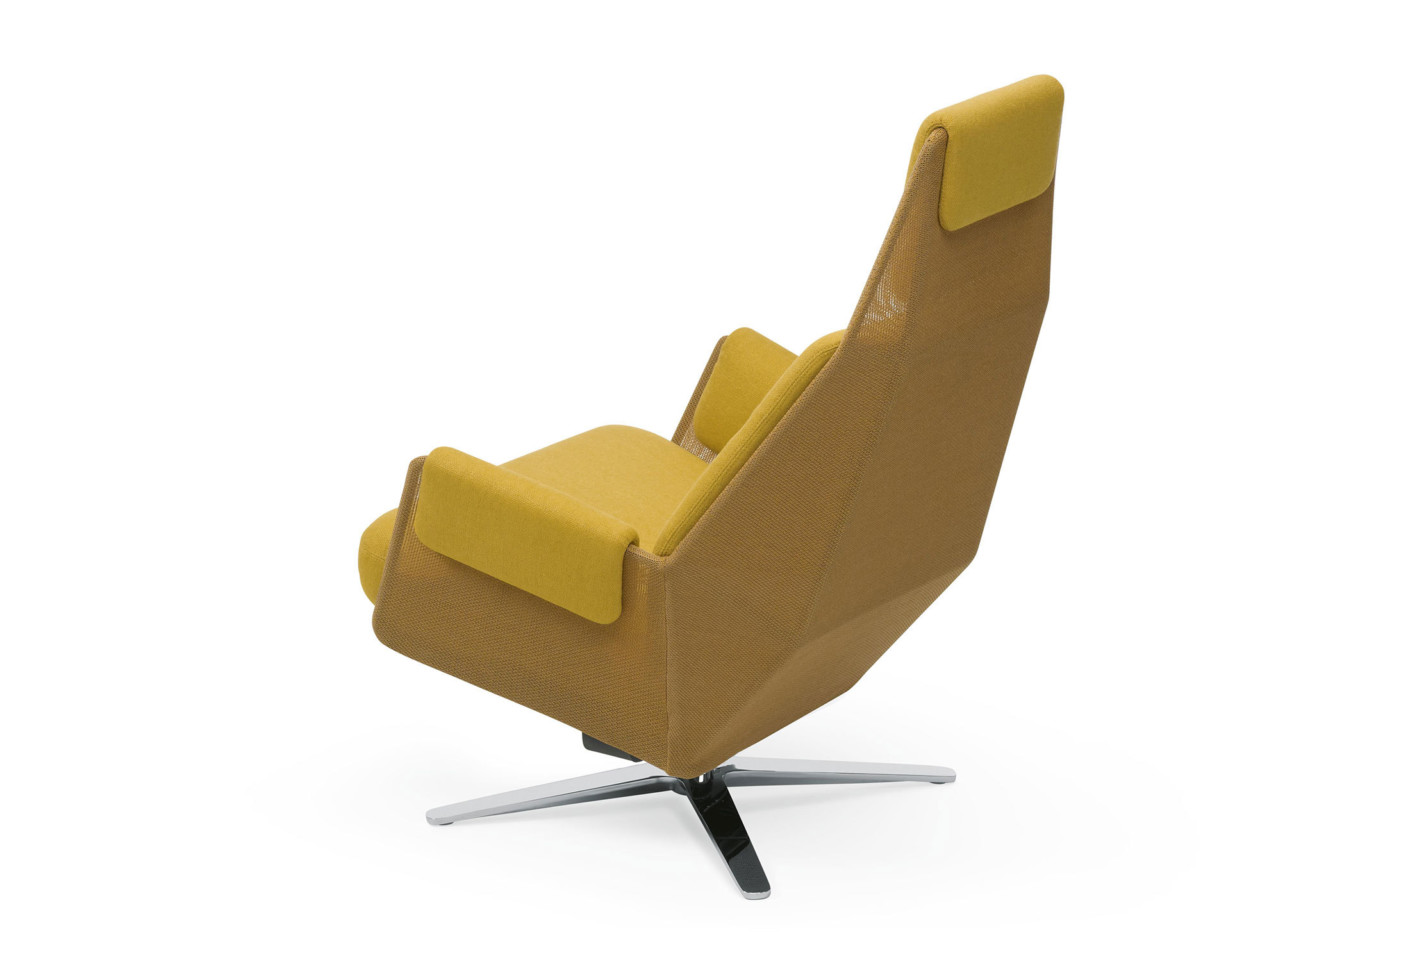 MESH Lounge Chair by Robin Rizzini for Intertime